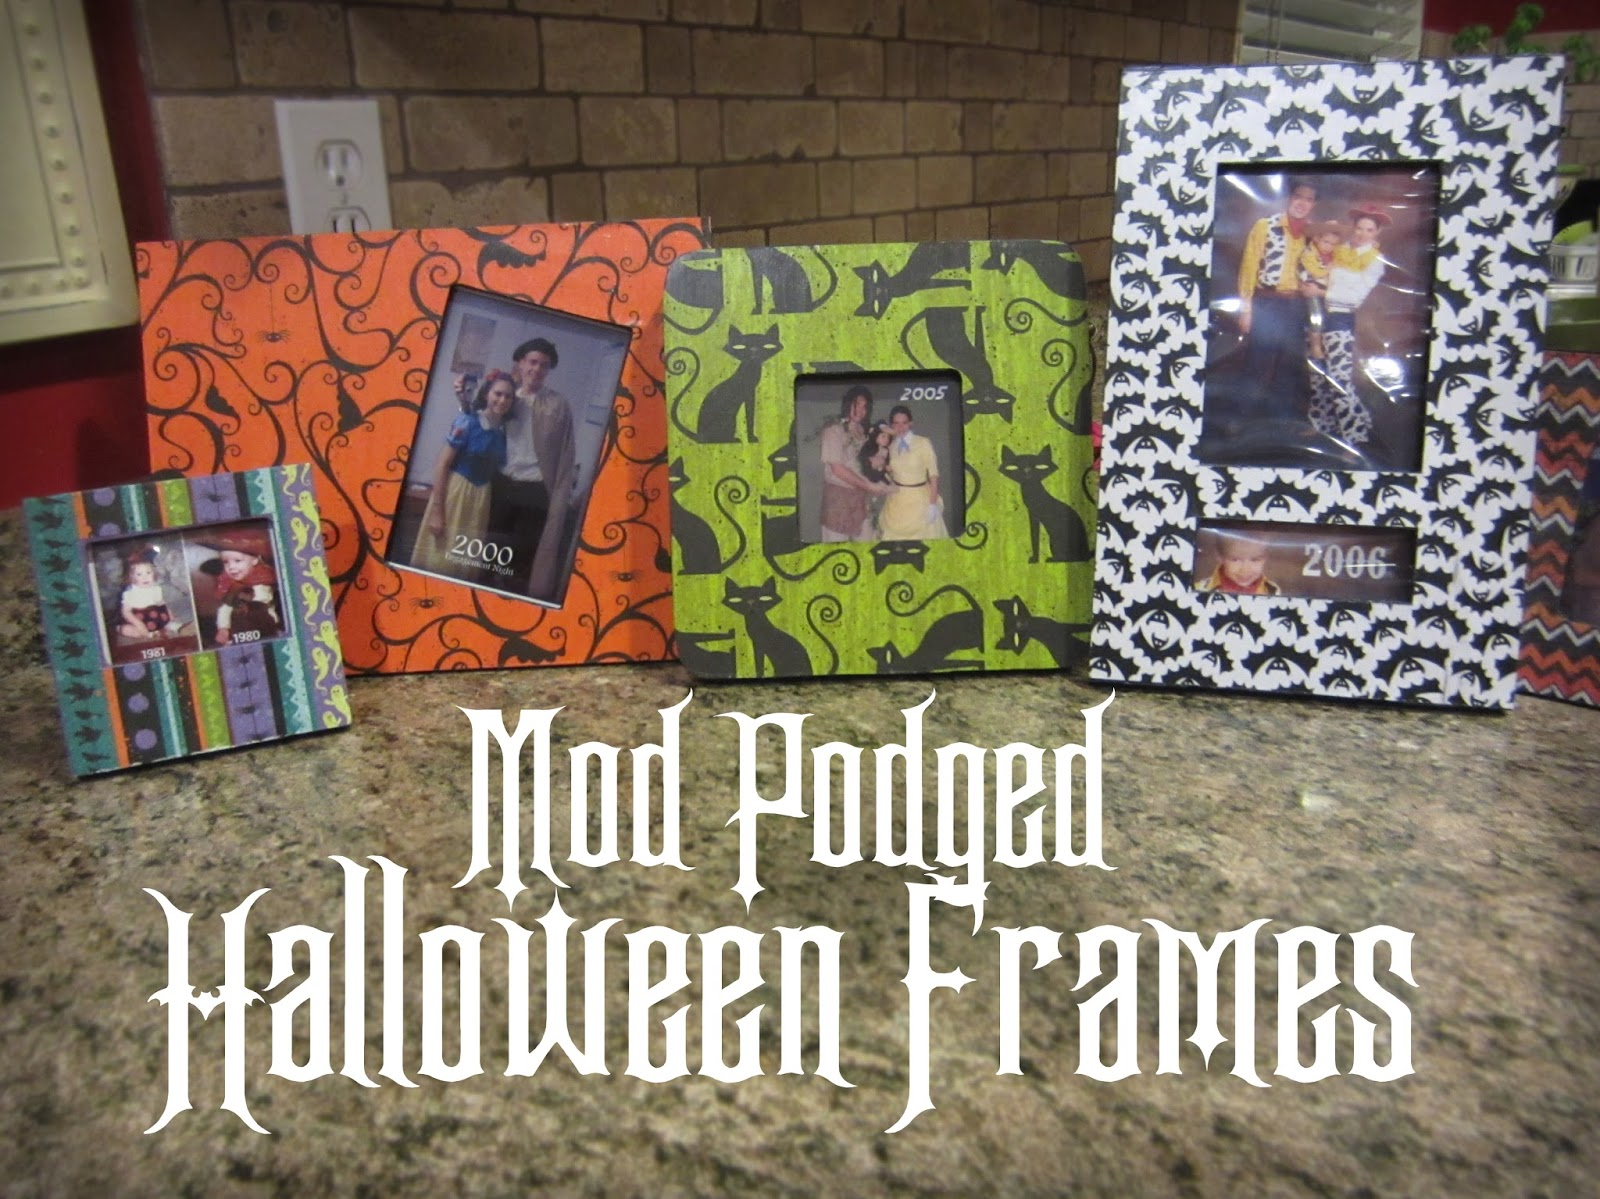 Craft phesine mod podged halloween frames jeuxipadfo Choice Image